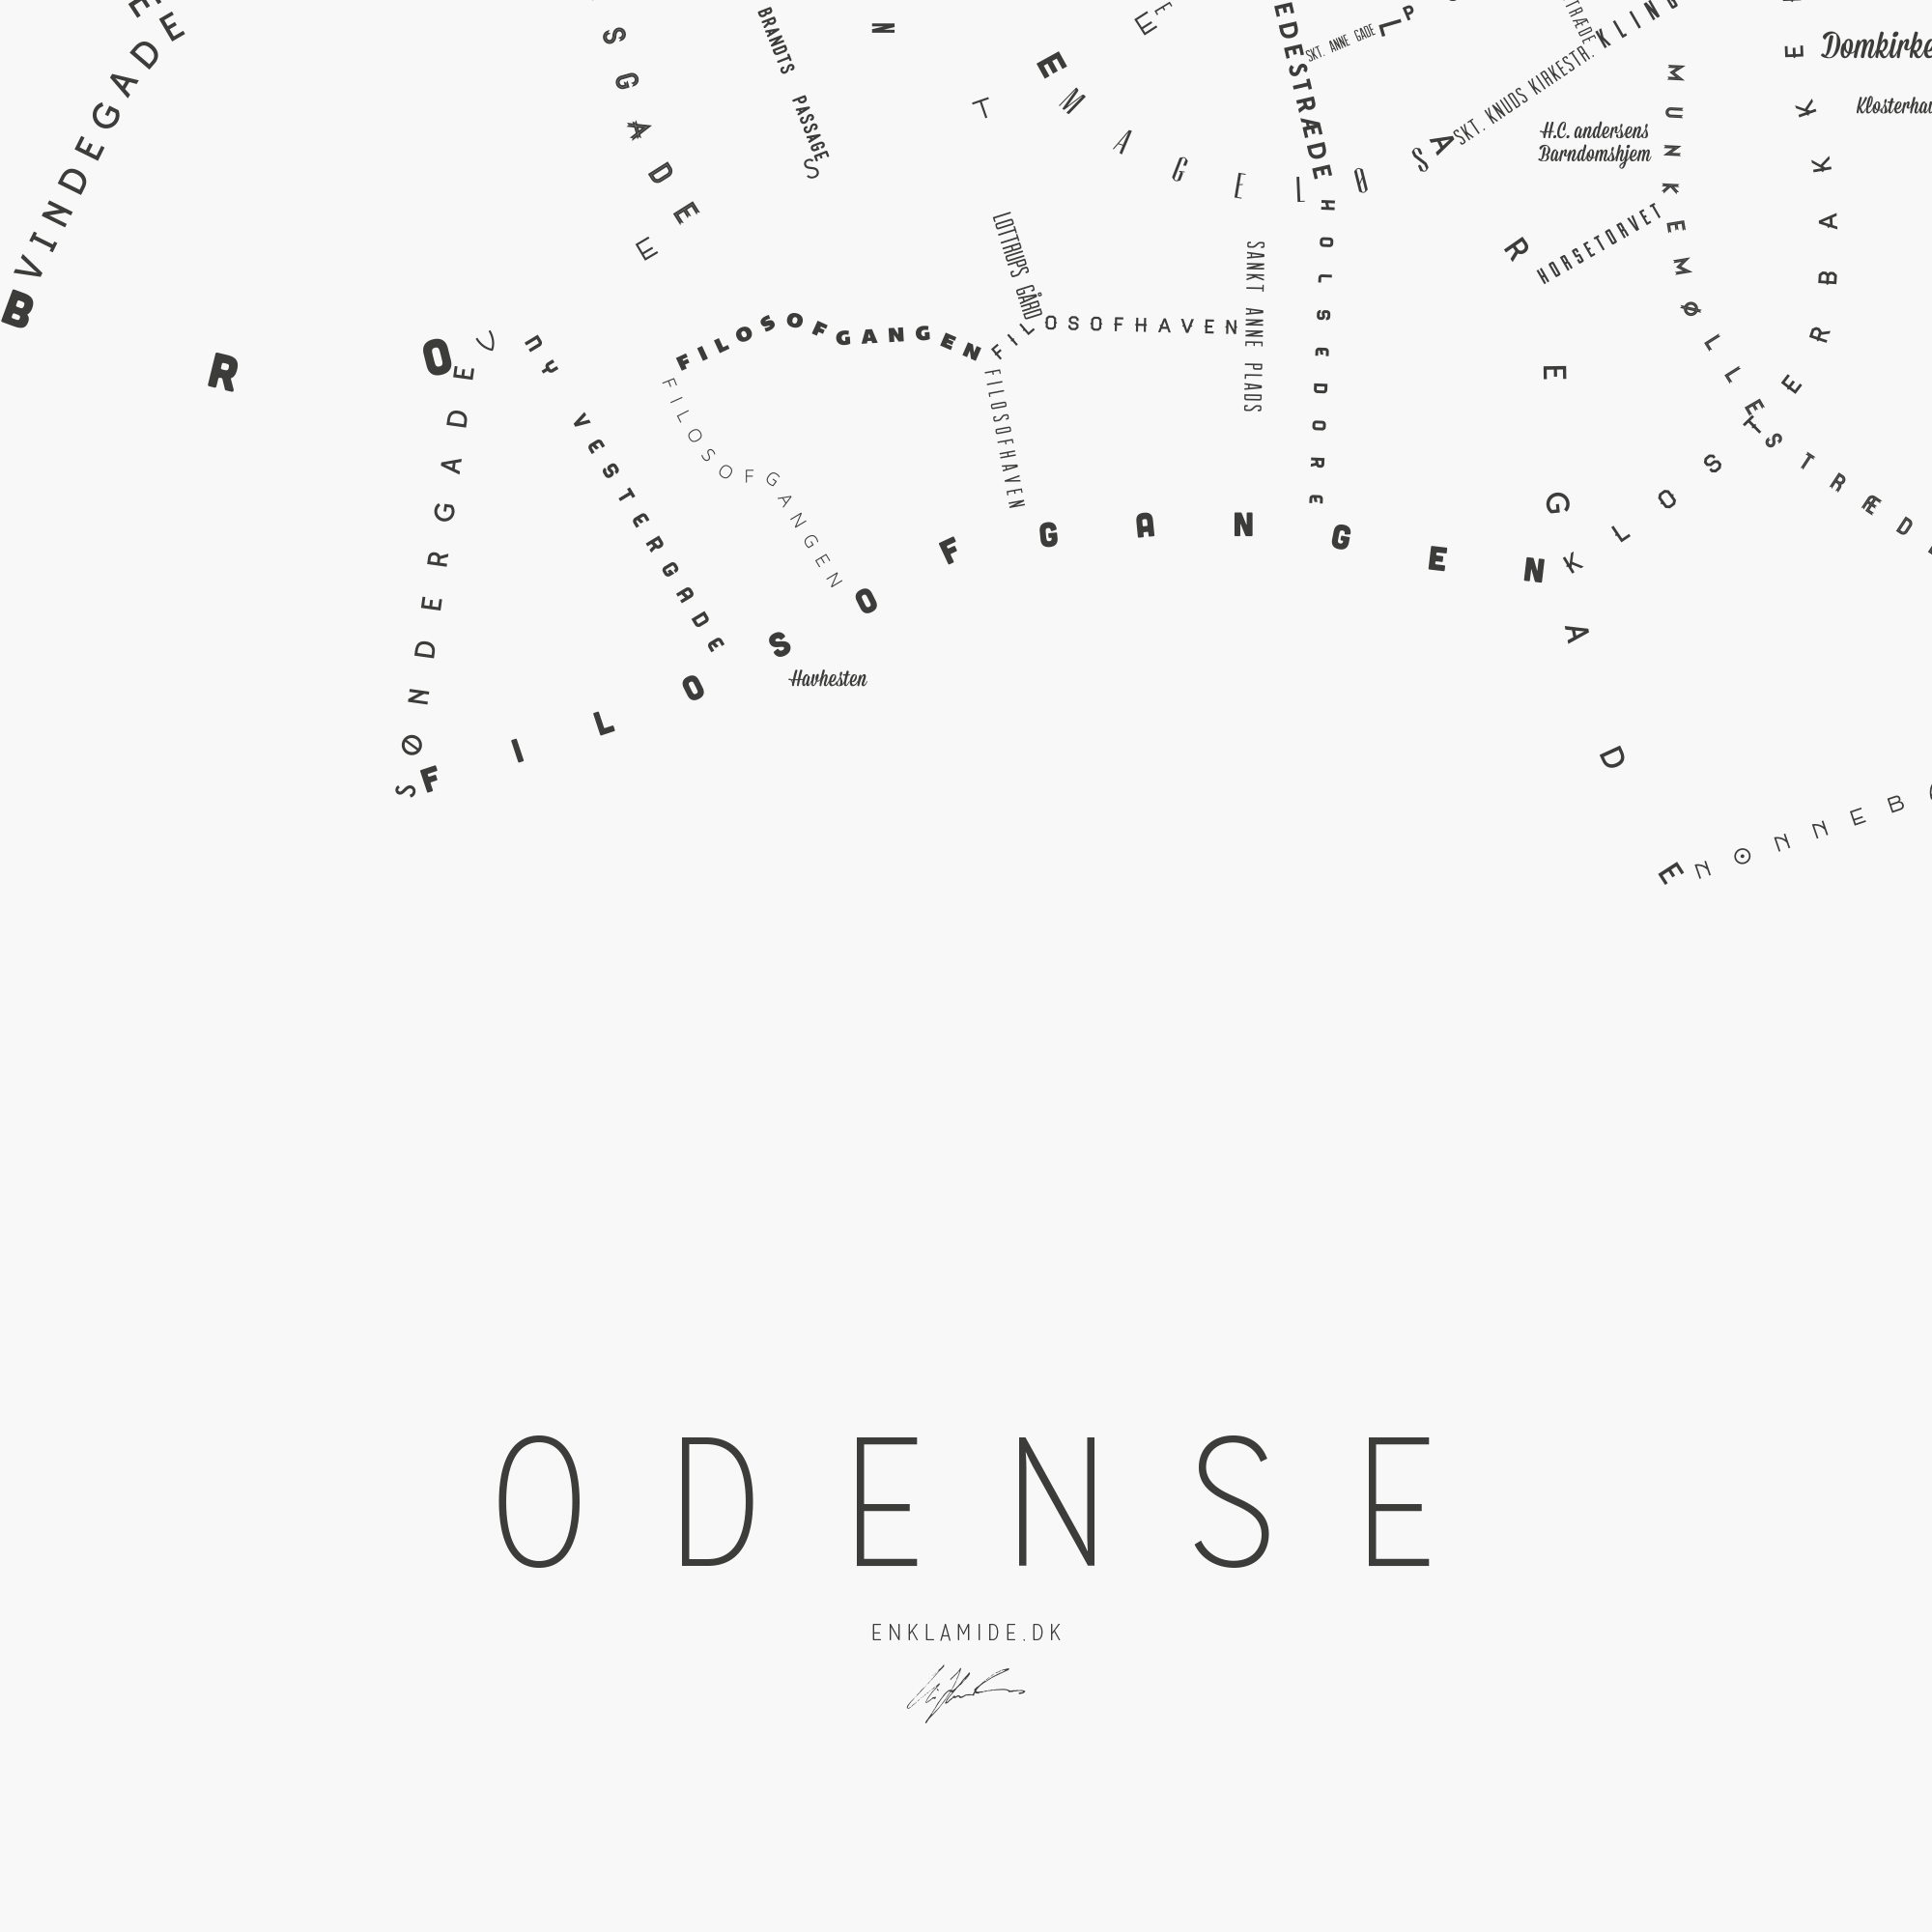 Odense III - Hvid